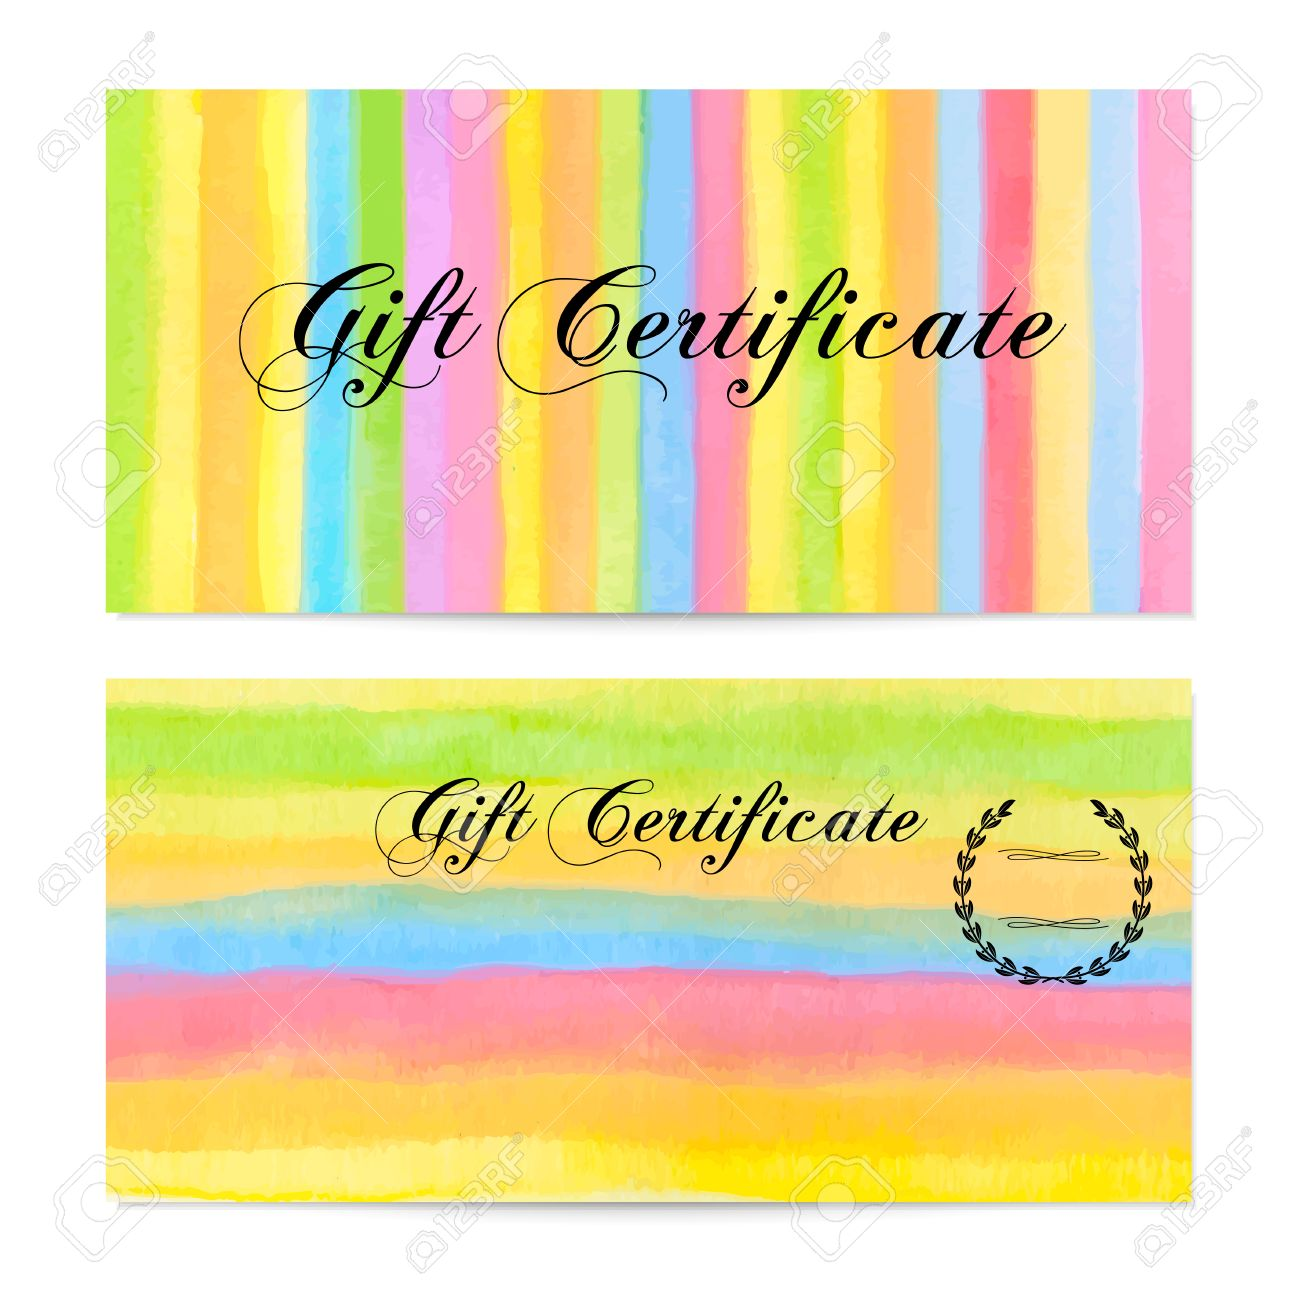 Gift certificate voucher coupon gift money bonus gift card gift certificate voucher coupon gift money bonus gift card template with colorful pronofoot35fo Gallery